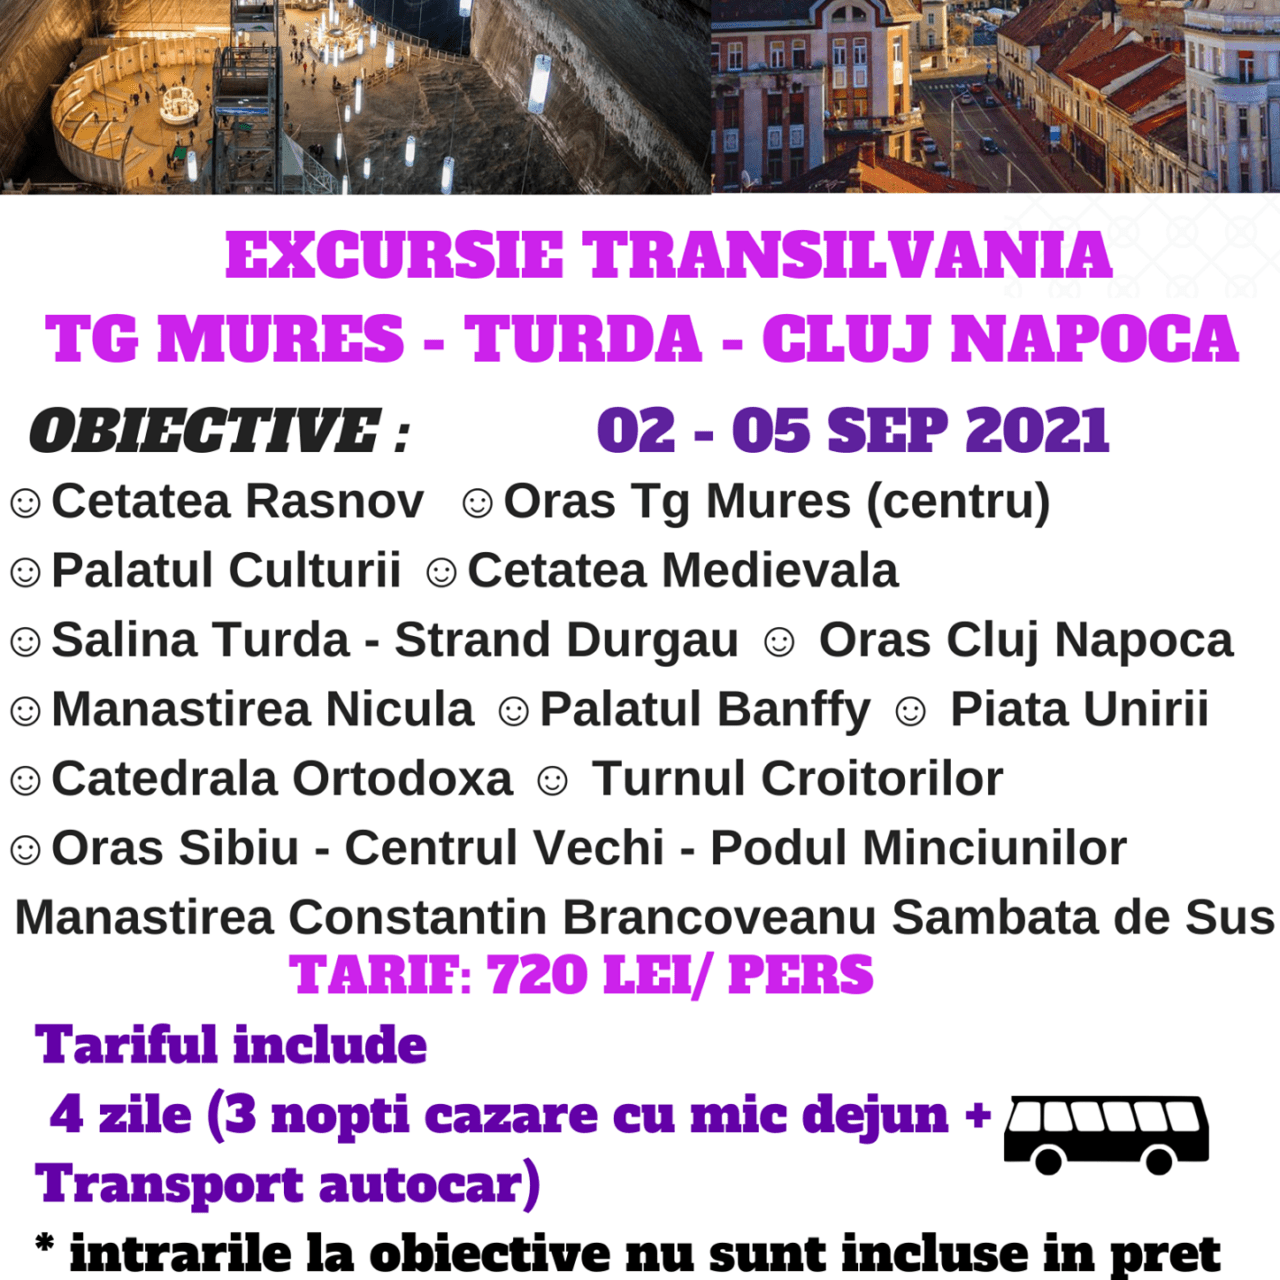 https://www.secomitravel.ro/wp-content/uploads/2020/11/127091563_193889932386673_1556763546540278157_n-1280x1280.png